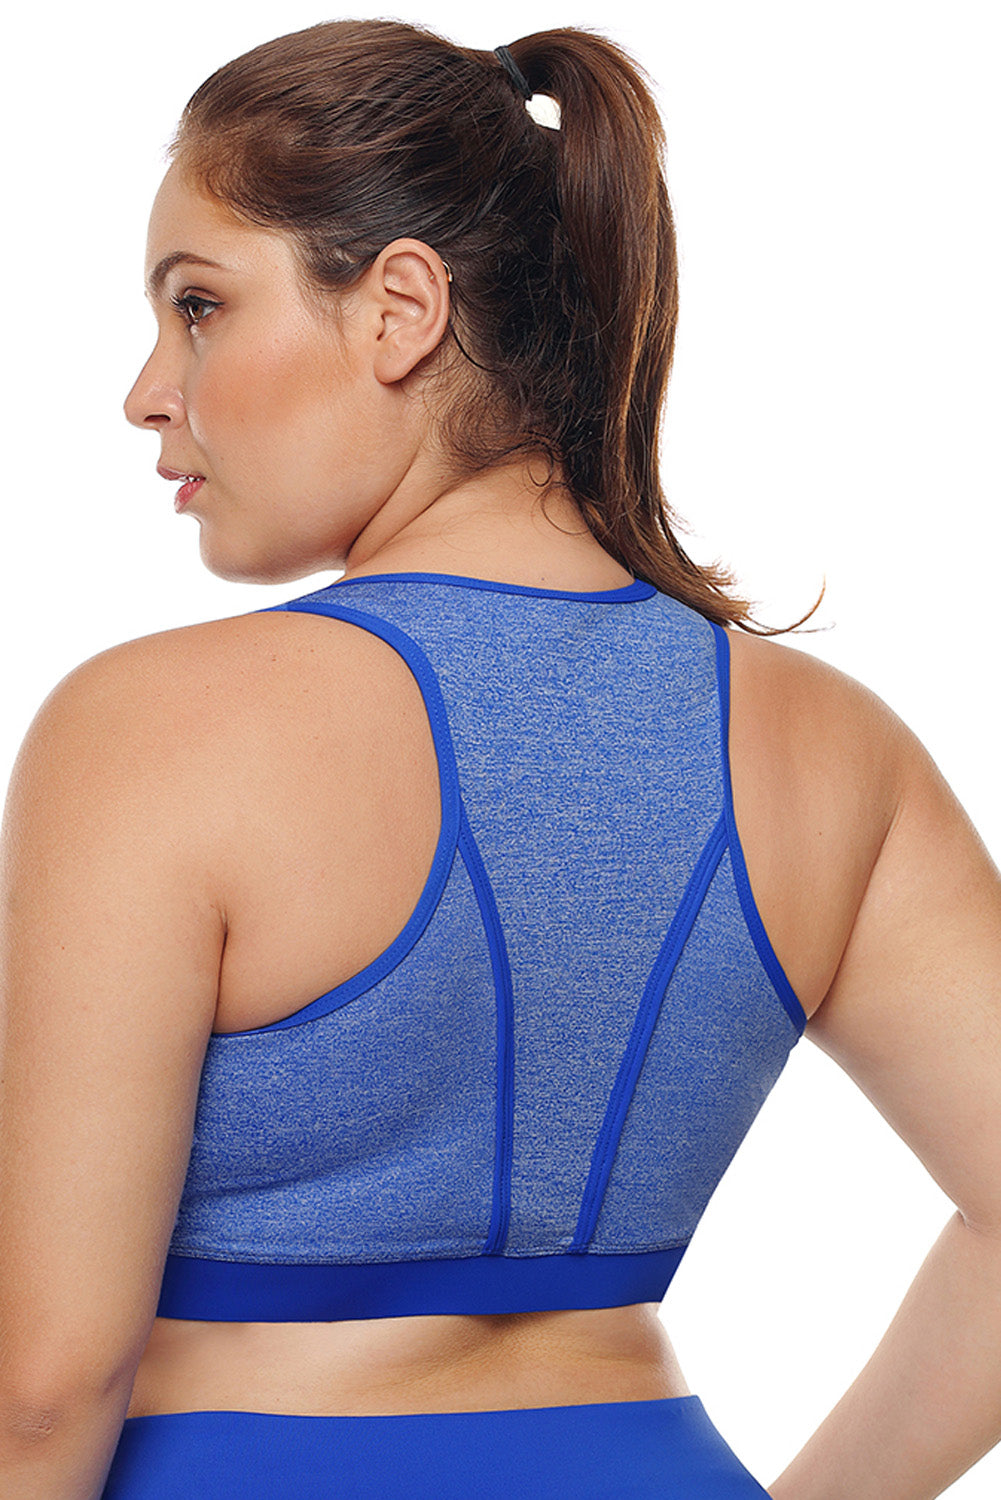 Heathered Royal Blue Piping Trim Racerback Workout Bra